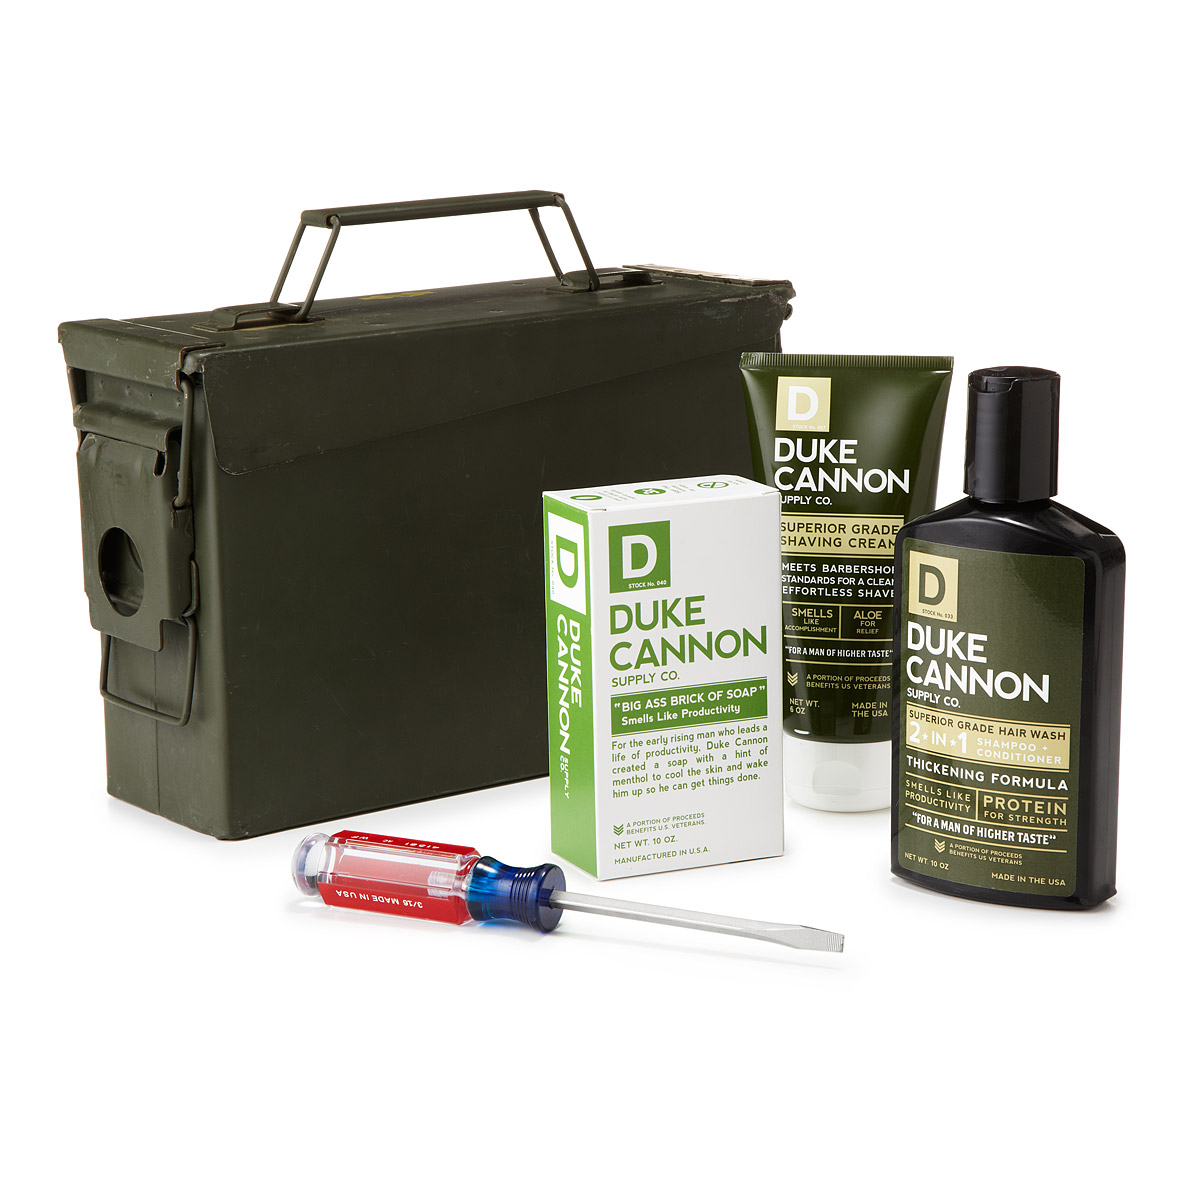 grooming kit modleed to look like a us army field kit